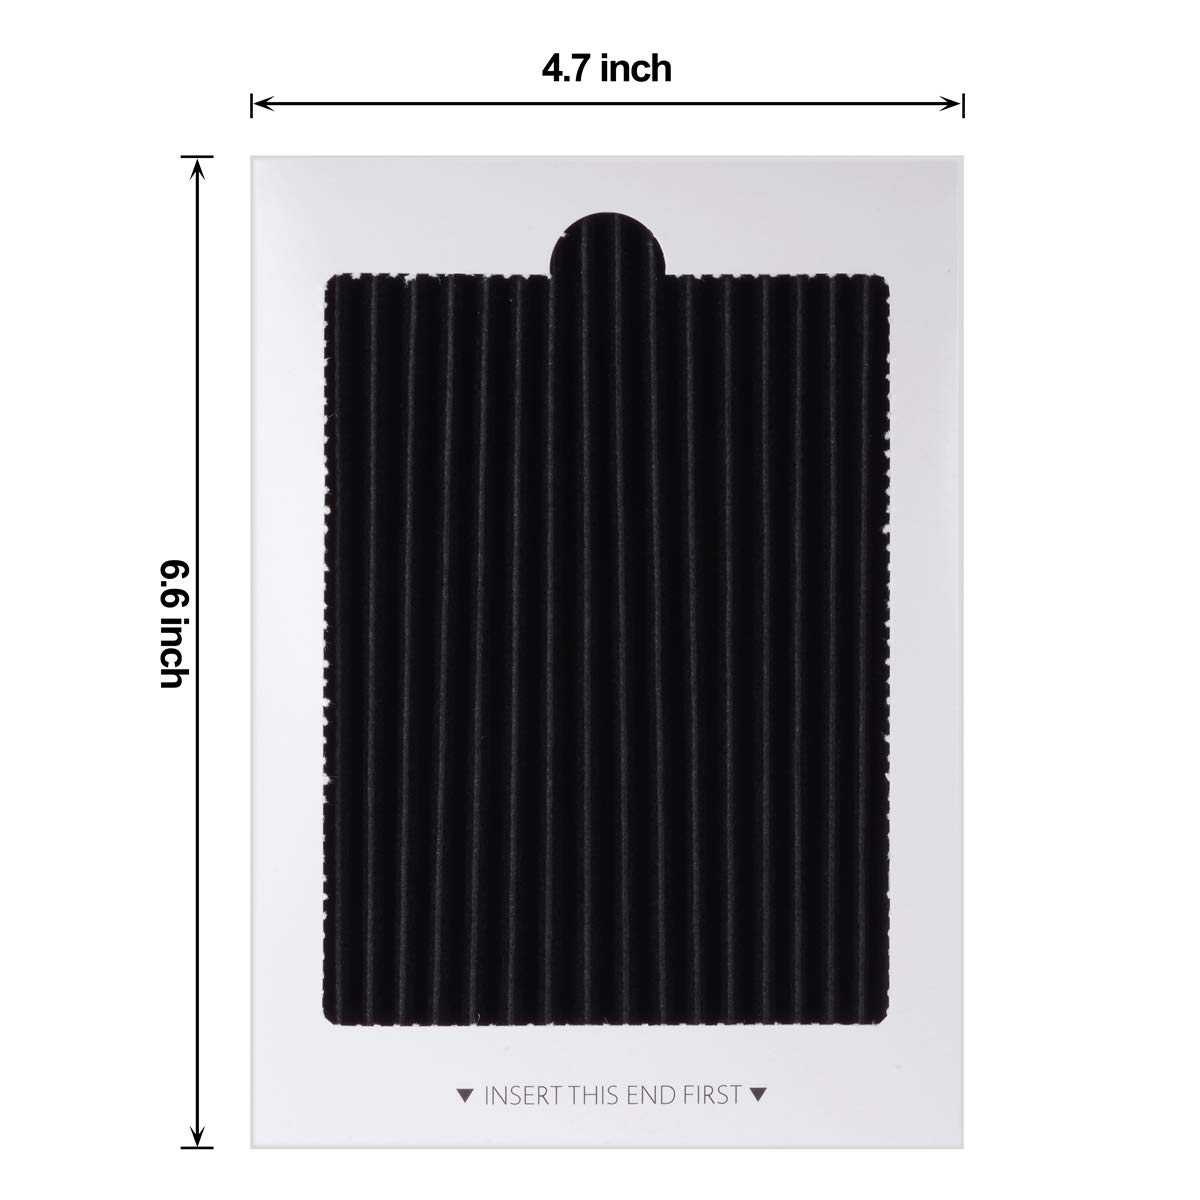 Carbon Activated Filter Replacement fits PAULTRA EAFCBF 242047801 4-Pack